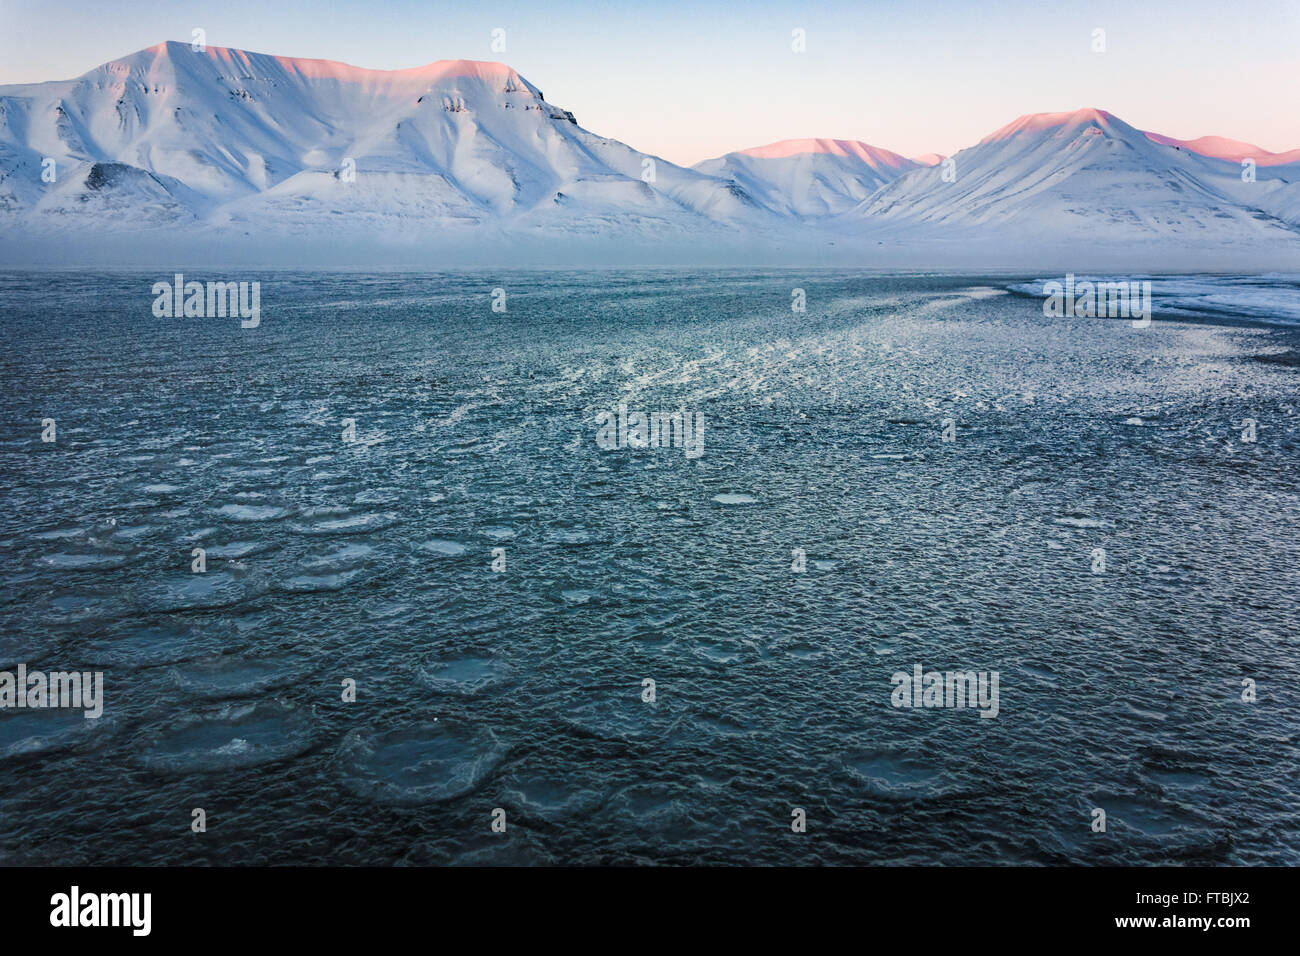 Sunset frozen shoreline at Sjøskrenten beach with views to Hiorthfjellet, Longyearbyen, Spitsbergen, Svalbard. - Stock Image